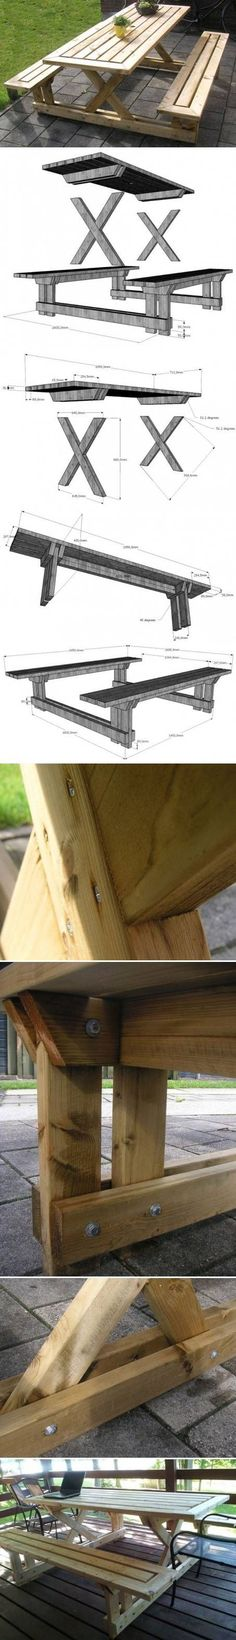 DIY Garden Bench and Table #tischumstuhl Gartenmöbel